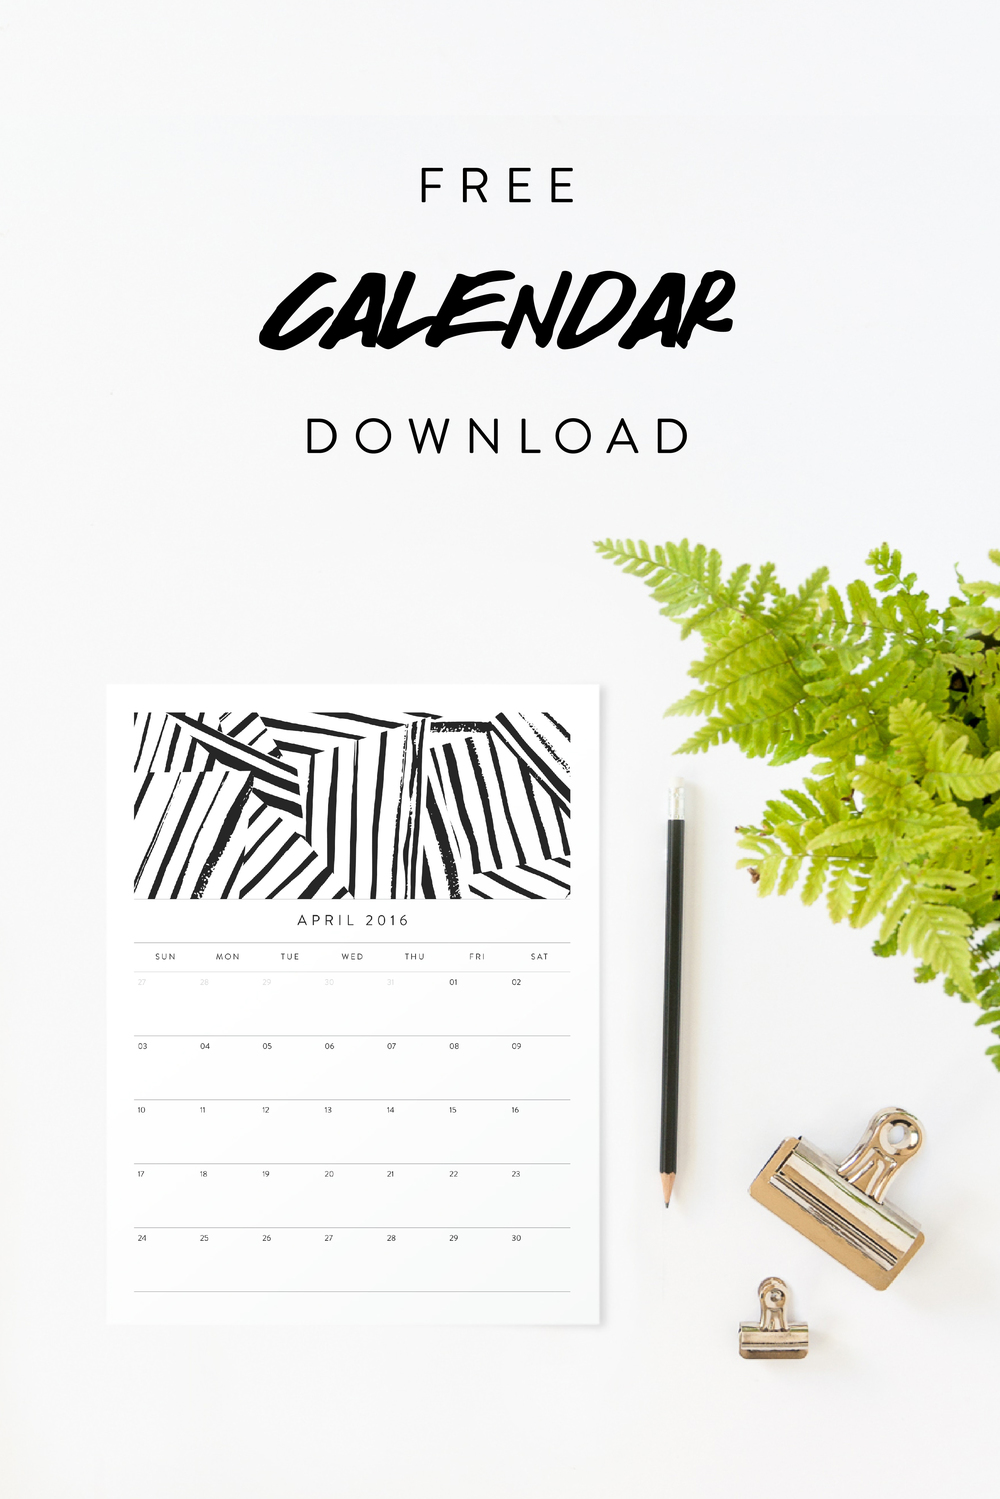 April 2016 Free Calendar Download